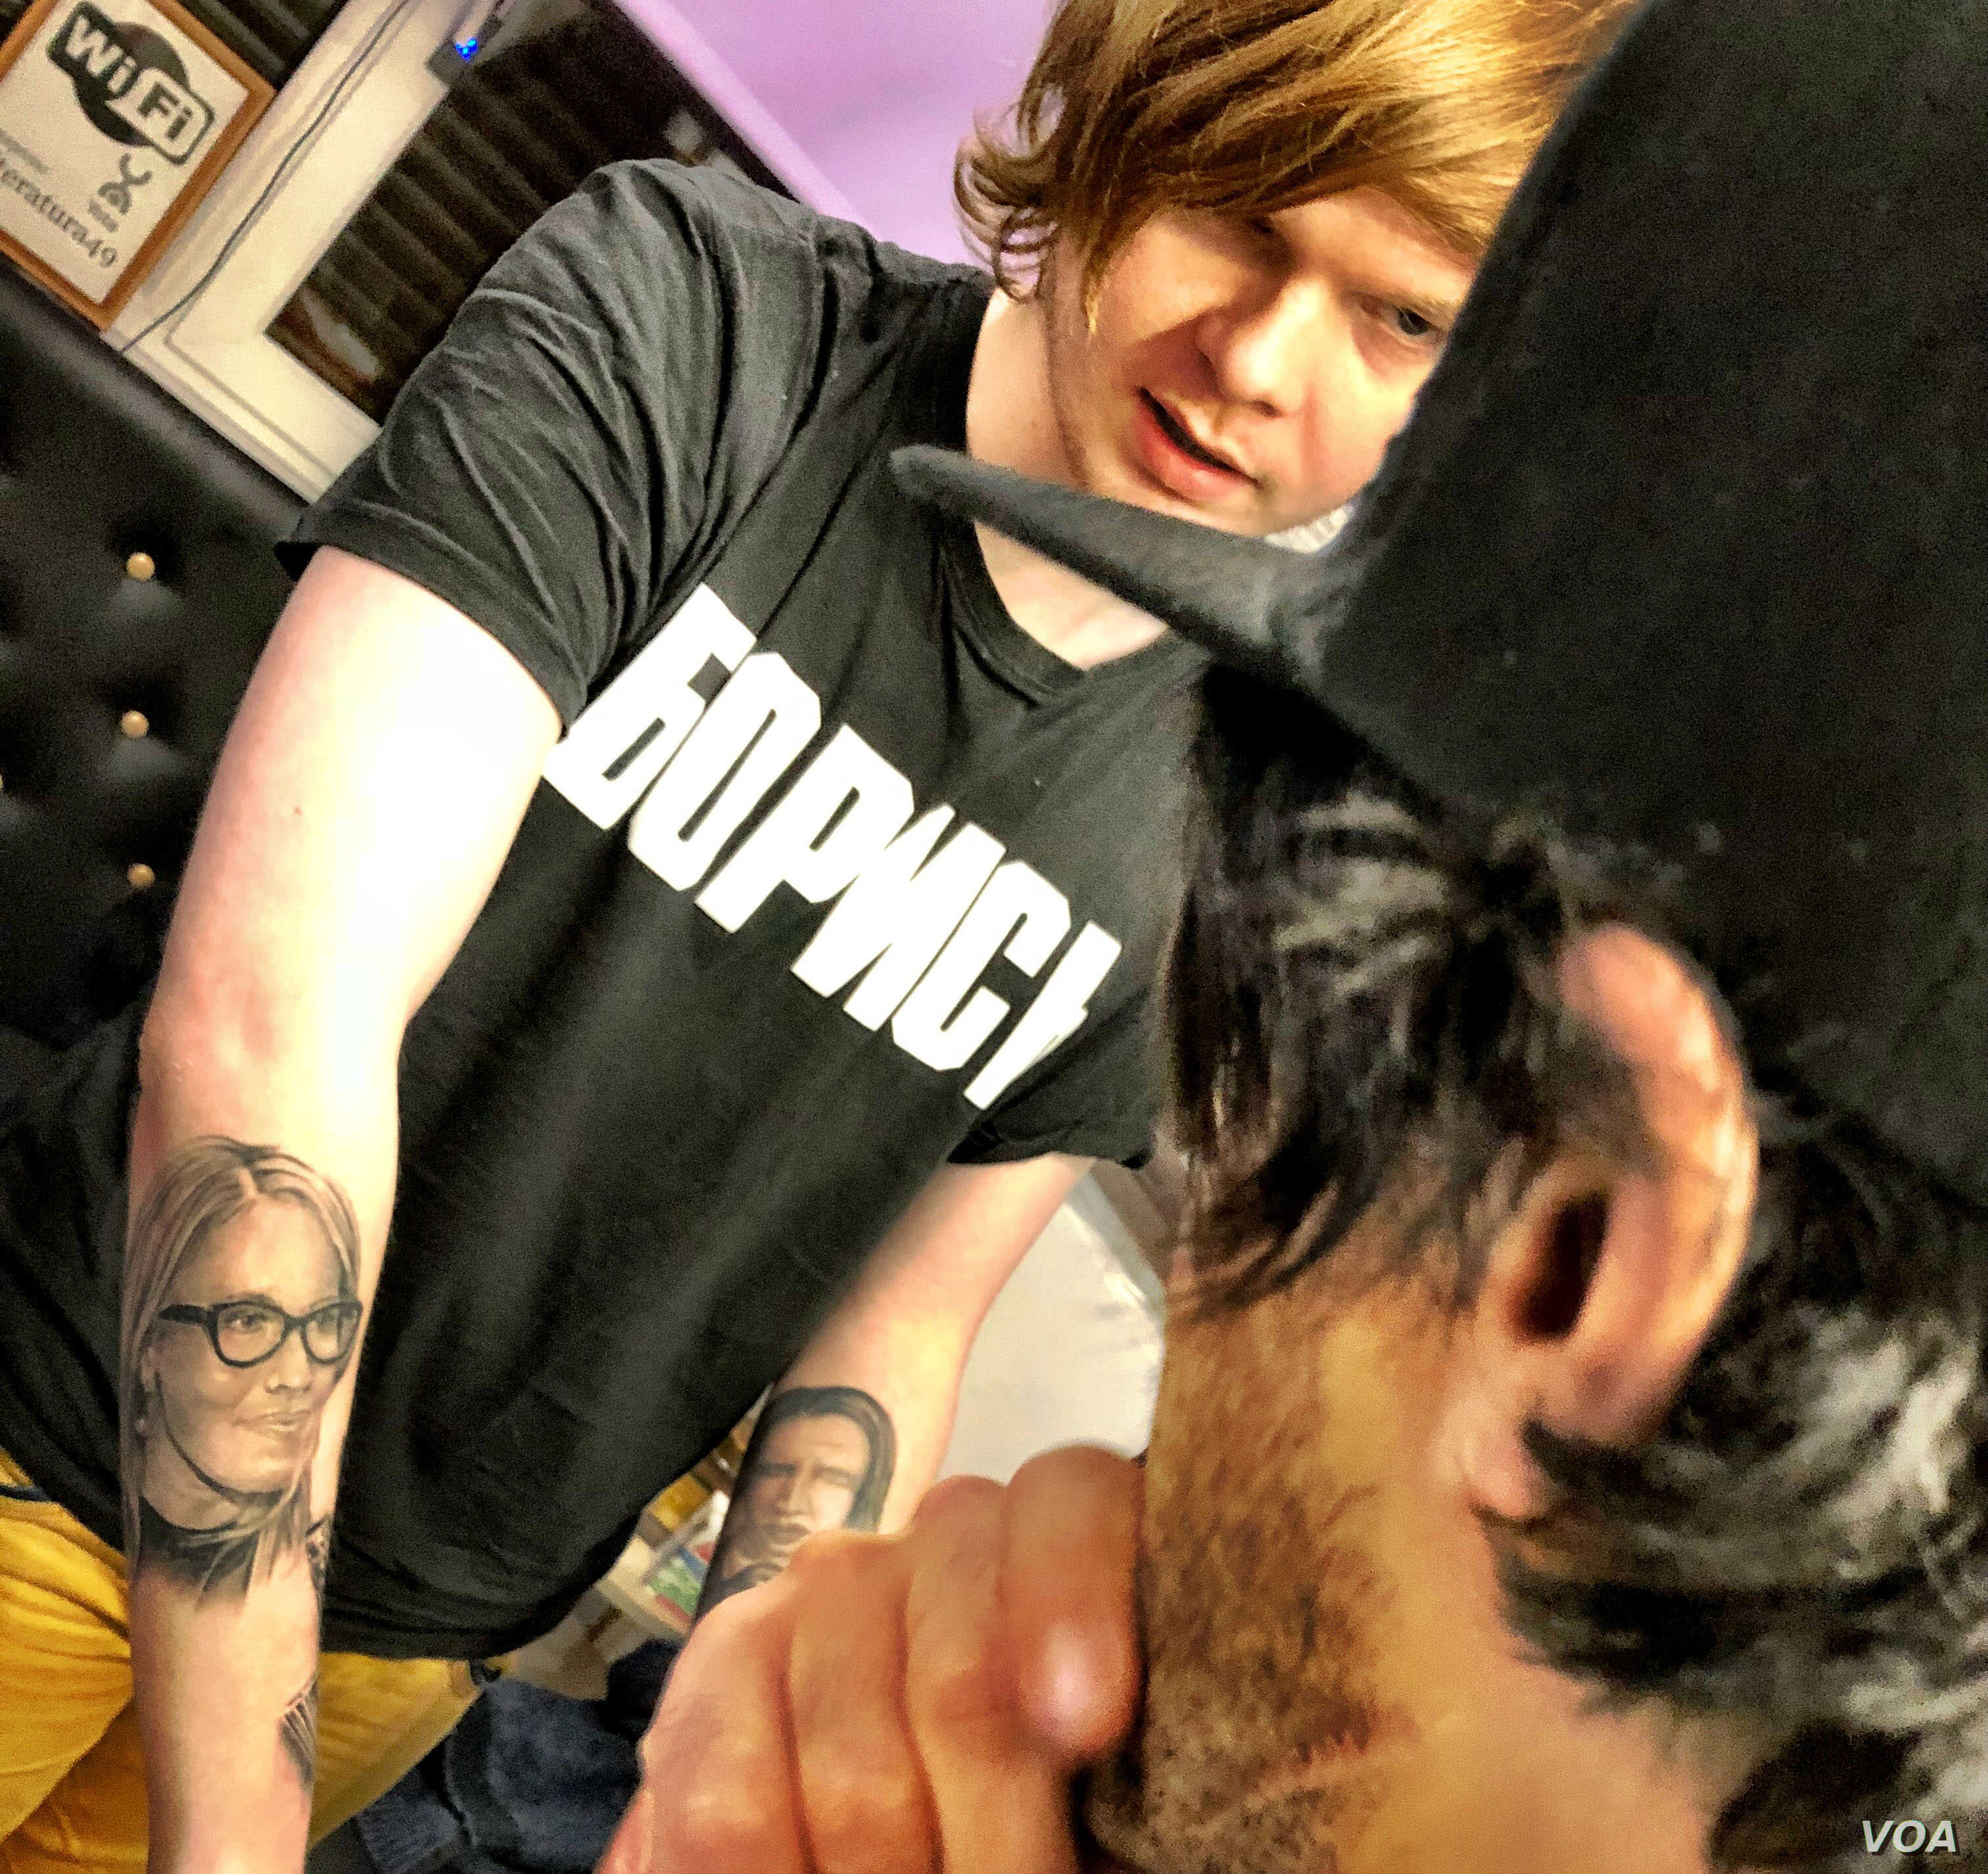 Russian journalist Vitaly Bespalov is seen at a St. Petersburg tattoo parlor in January 2018. Bespalov went undercover in 2014 to report on the Internet Research Agency. Amid attention on the IRA's role in the 2016 US presidential elections, Russian ...